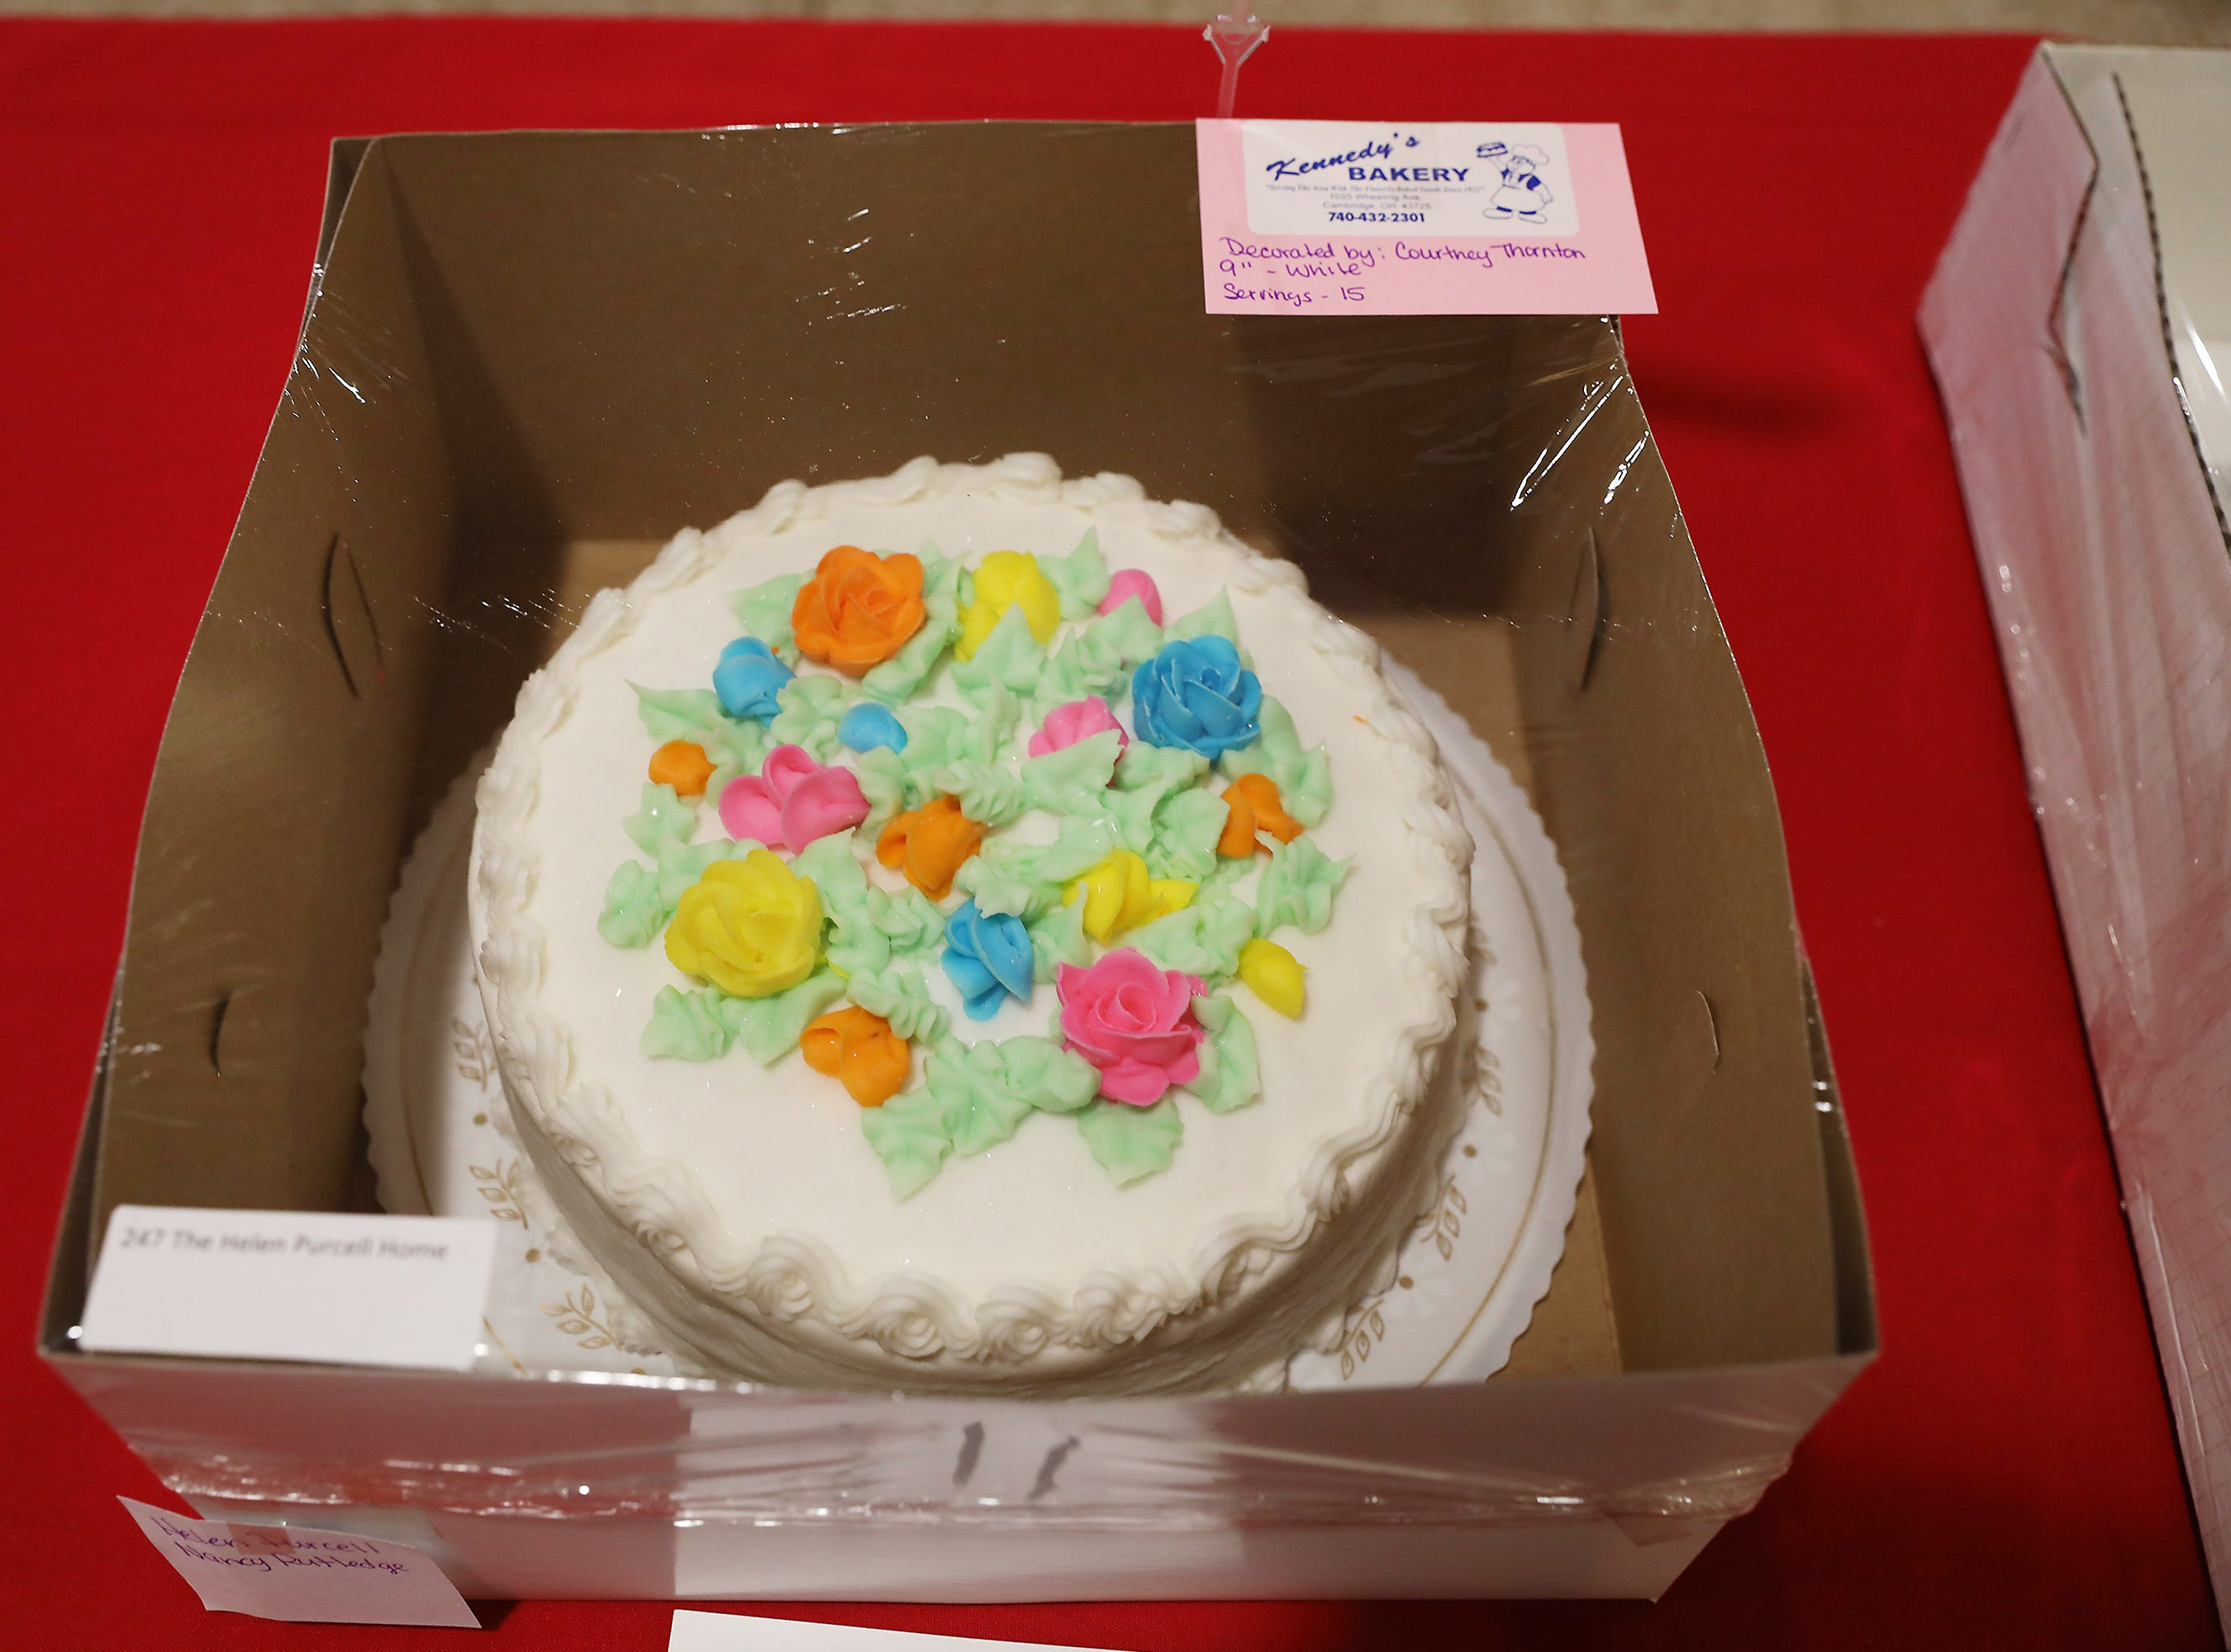 9:45 A.M. Friday cake 247 The Helen Purcell Home - catered event at Helen Purcell; $300